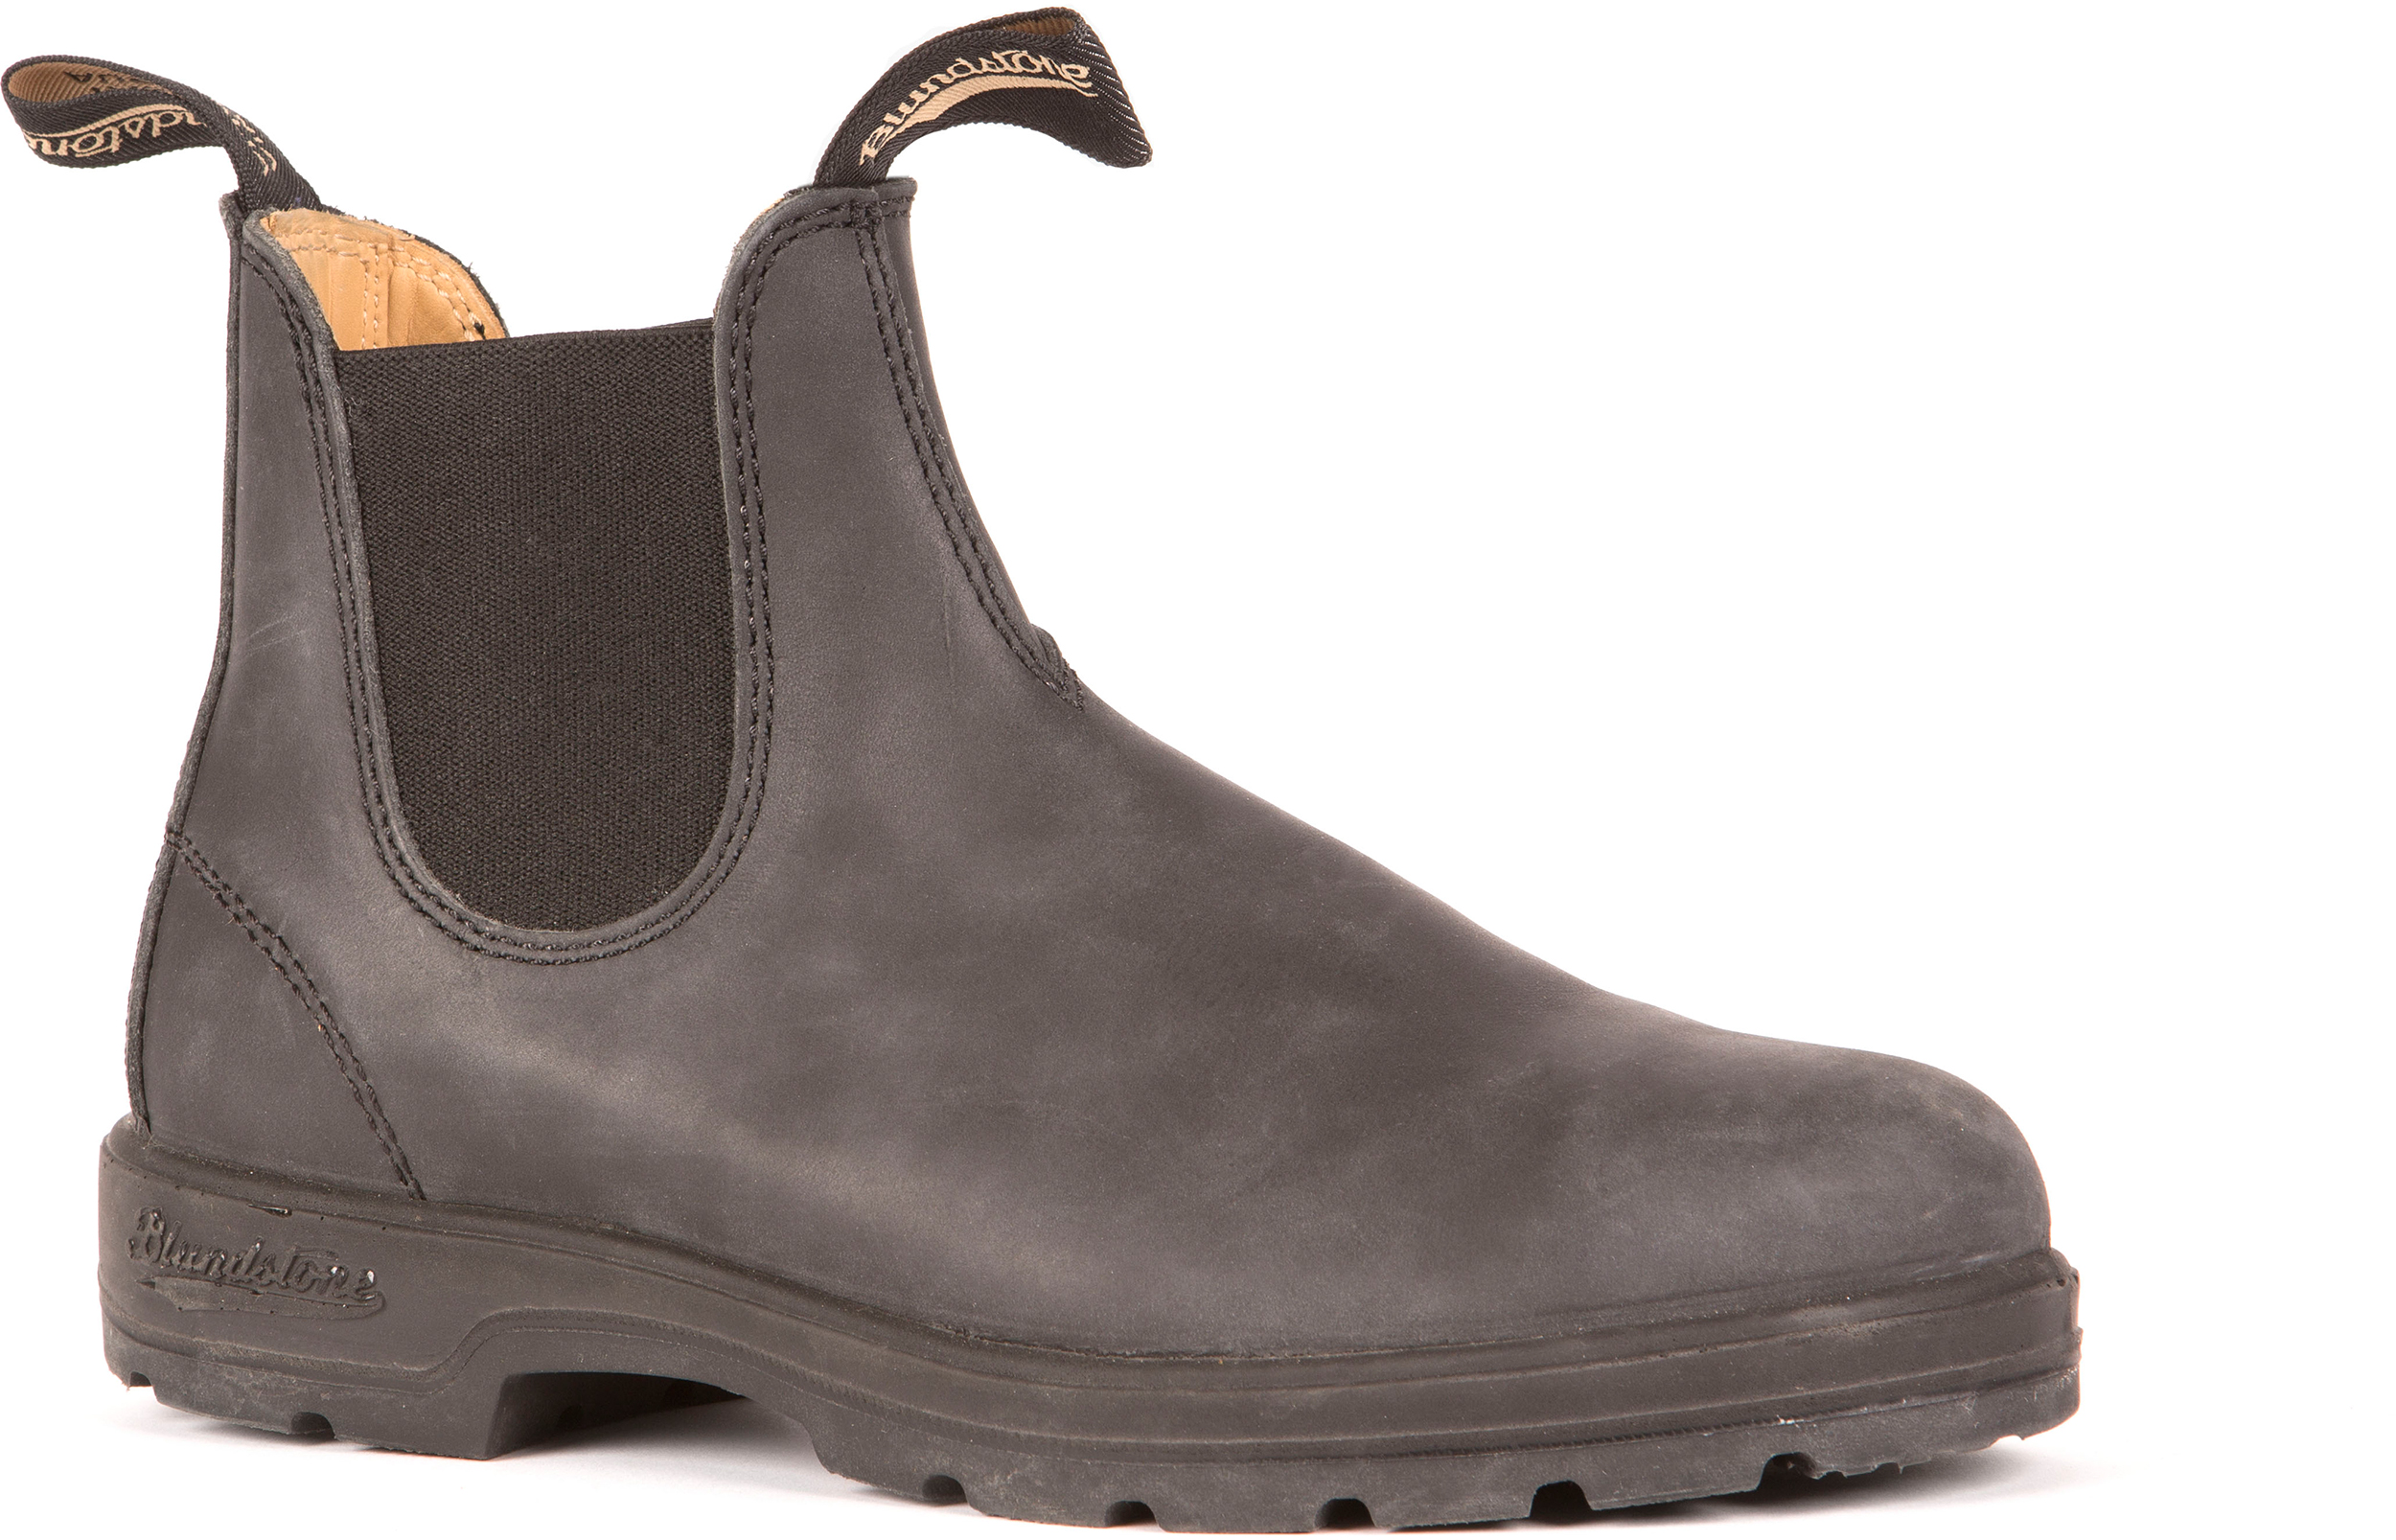 7bcf25a599d Blundstone All products | MEC